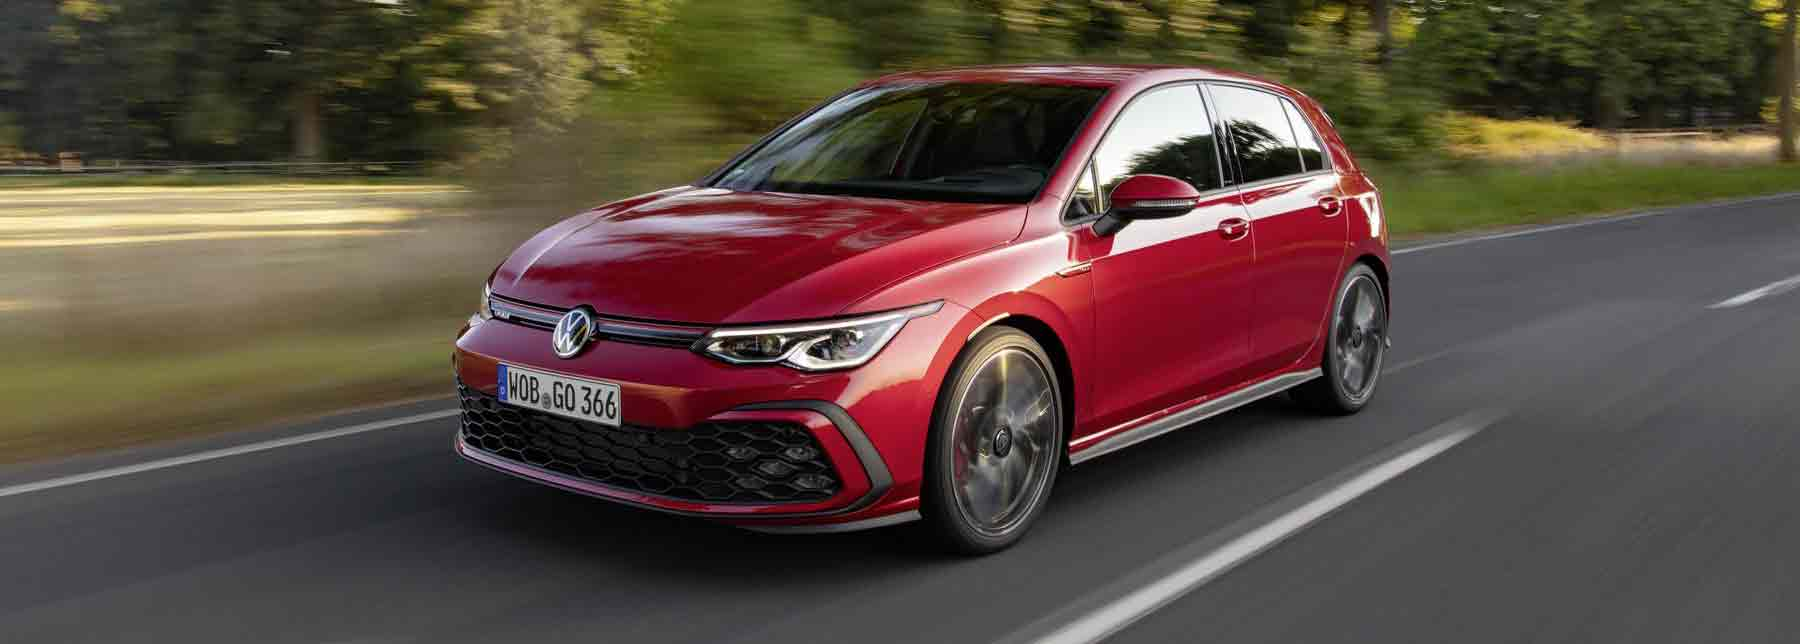 Specification and pricing of VW Golf 8 GTI announced